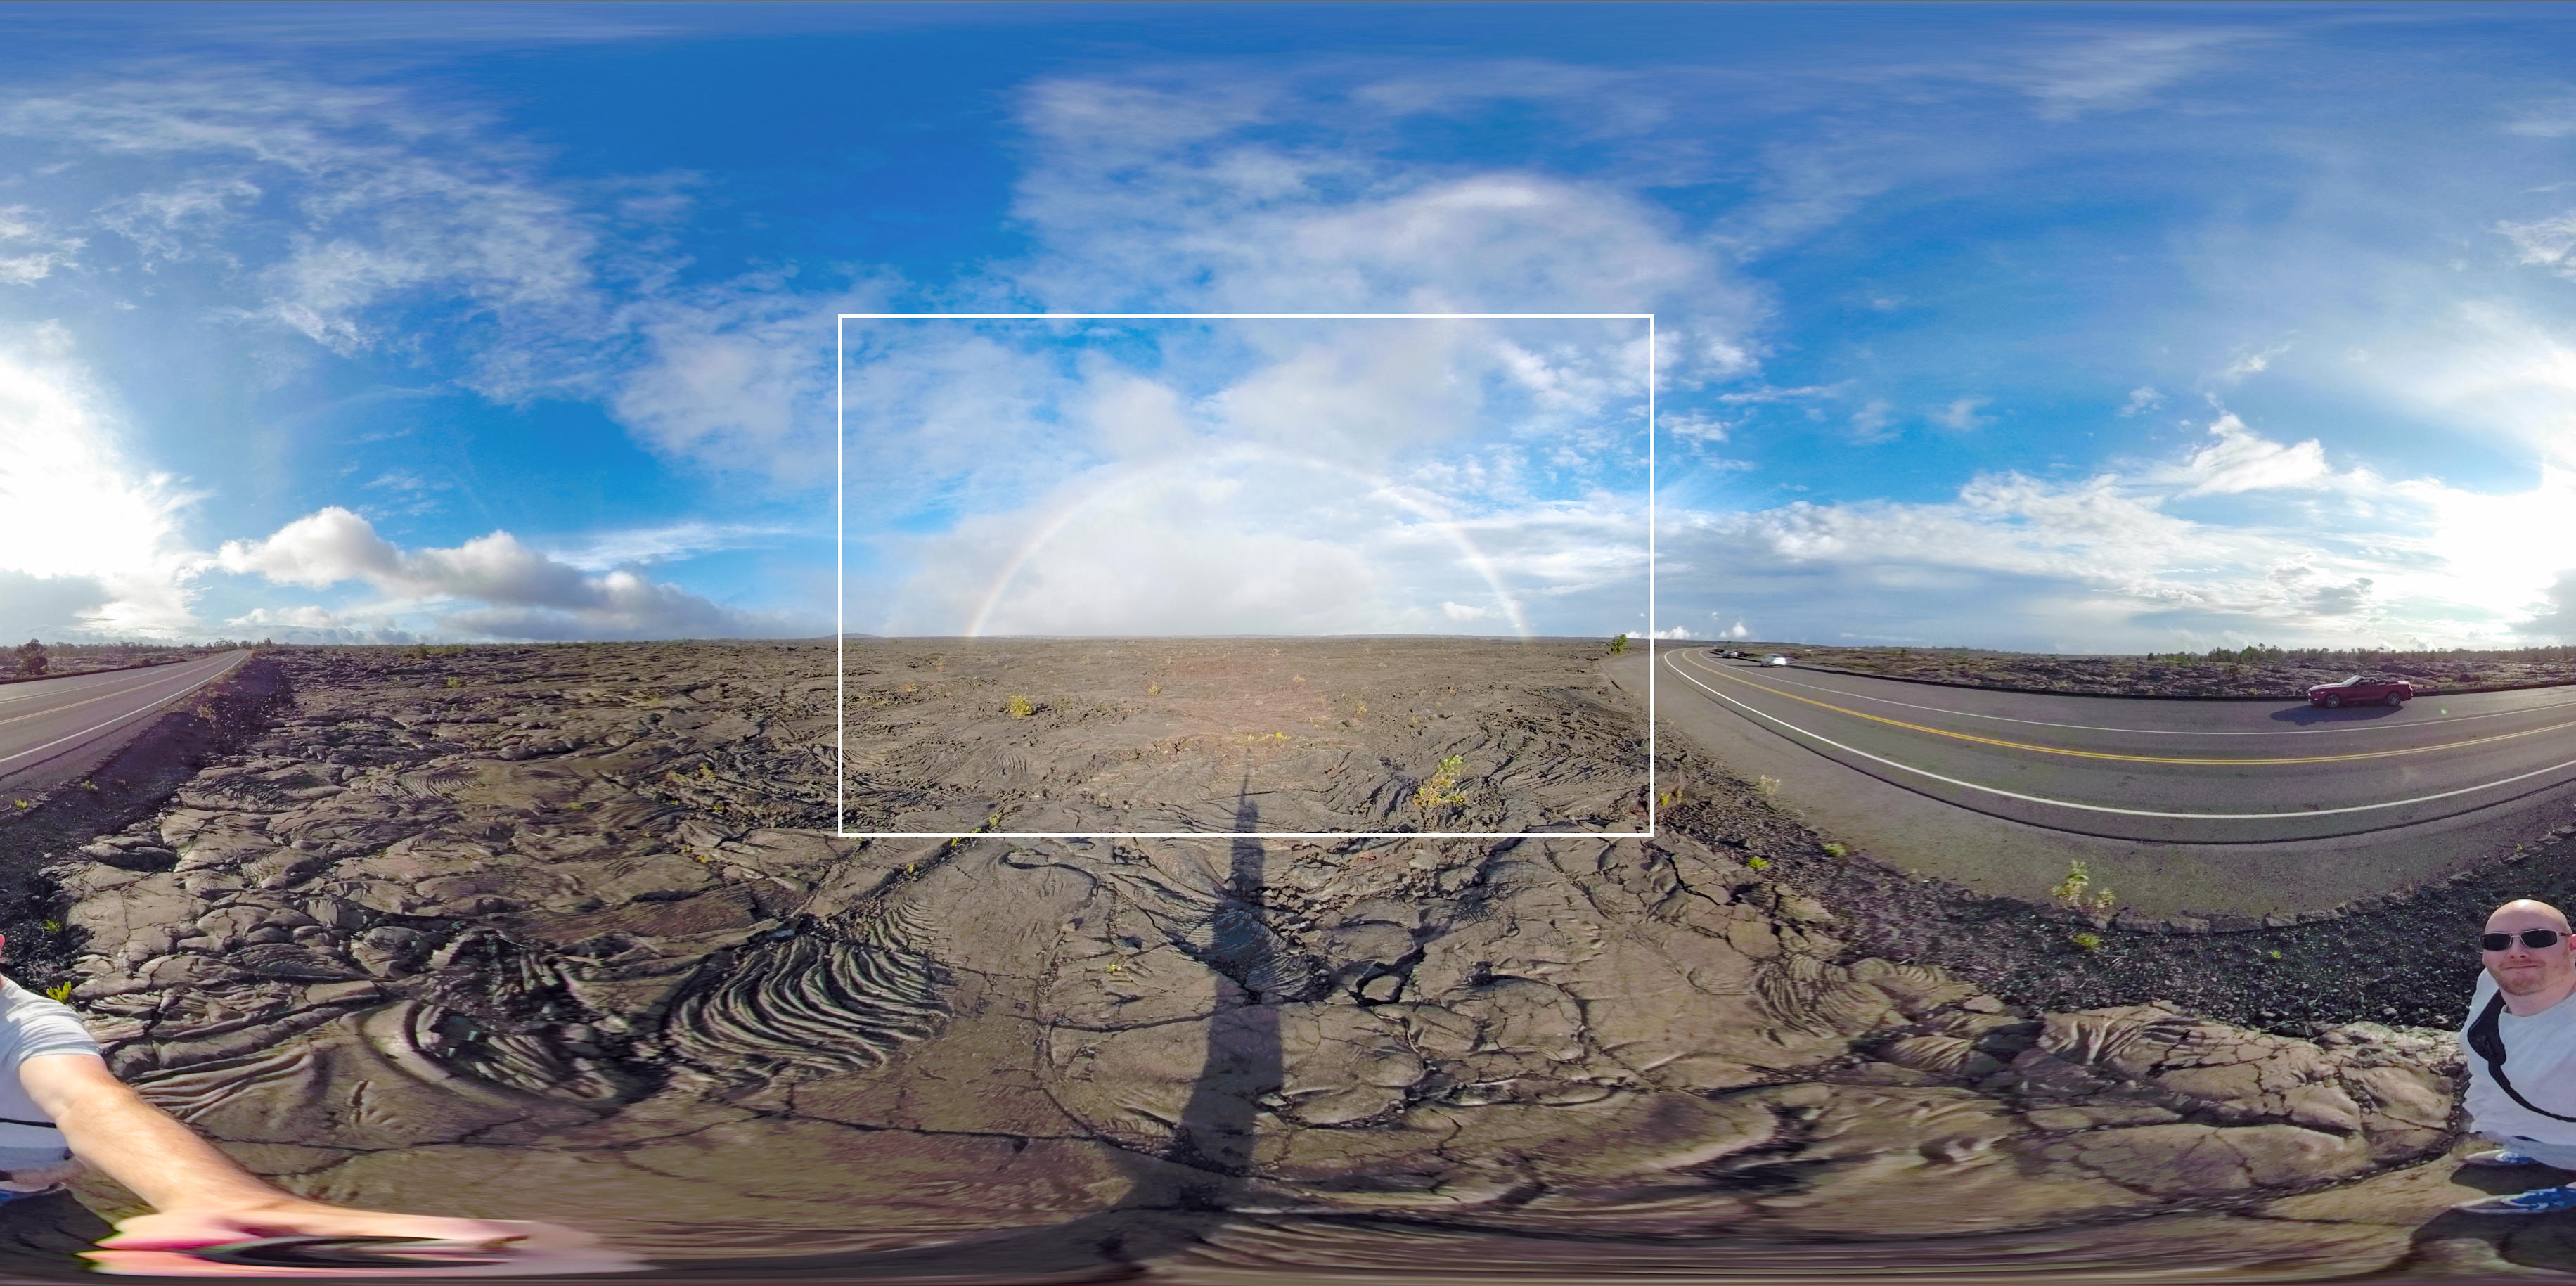 360-field-of-view